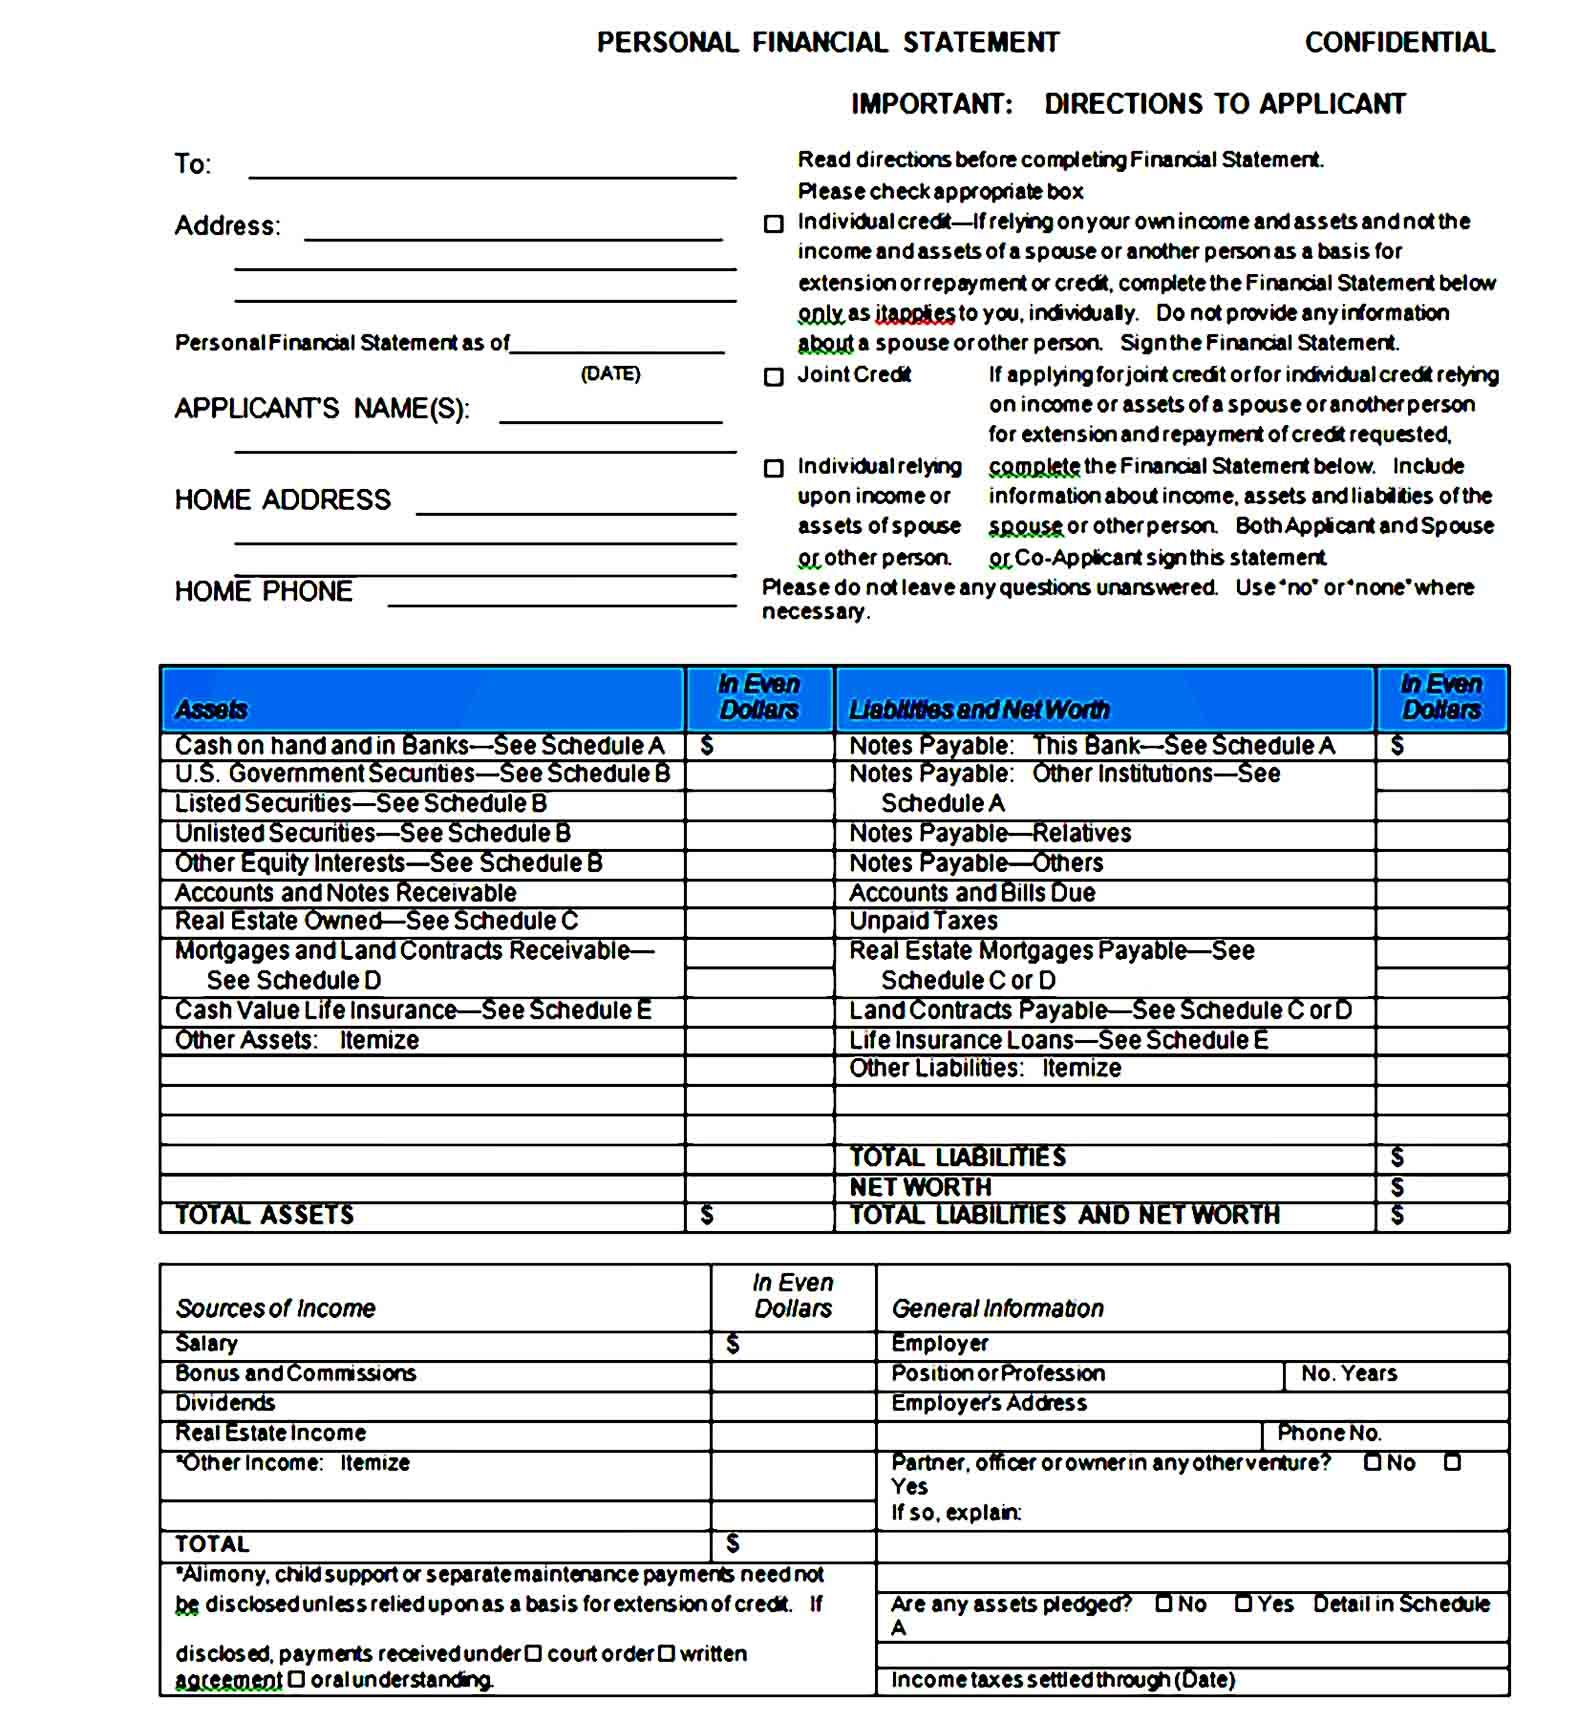 Sample Personal Financial Statement Template Bank Form Huntington Webster